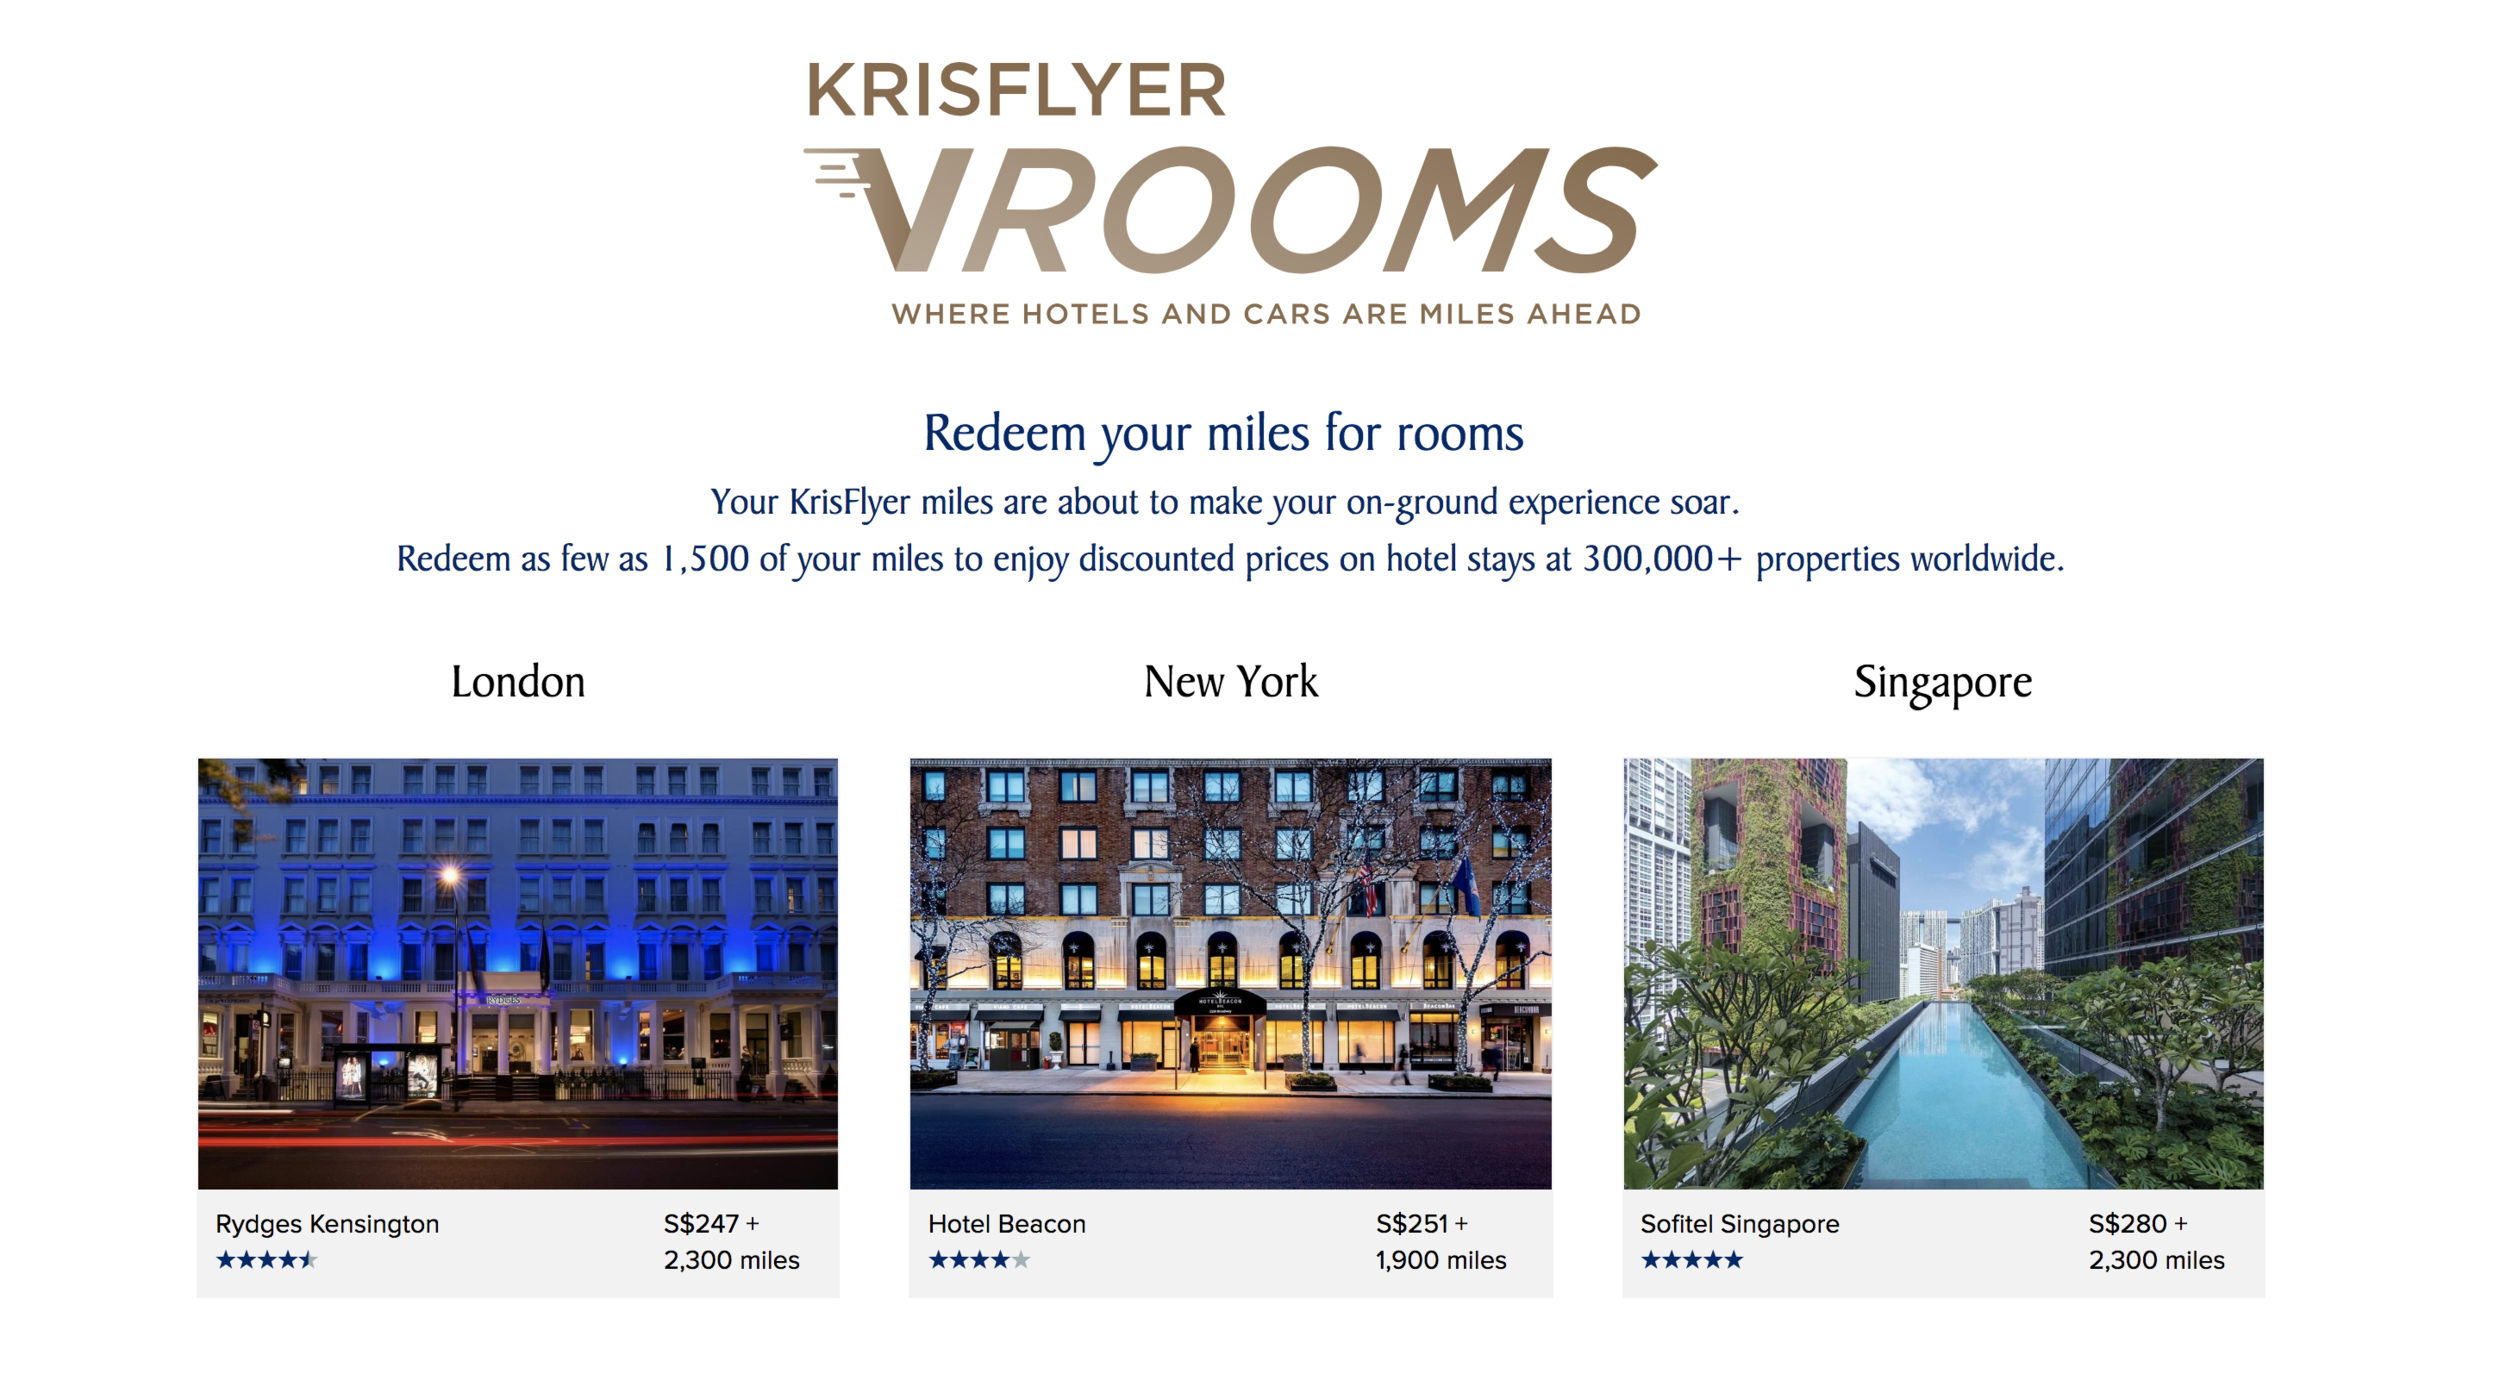 krisflyer-vrooms-sq-singapore-airlines.png